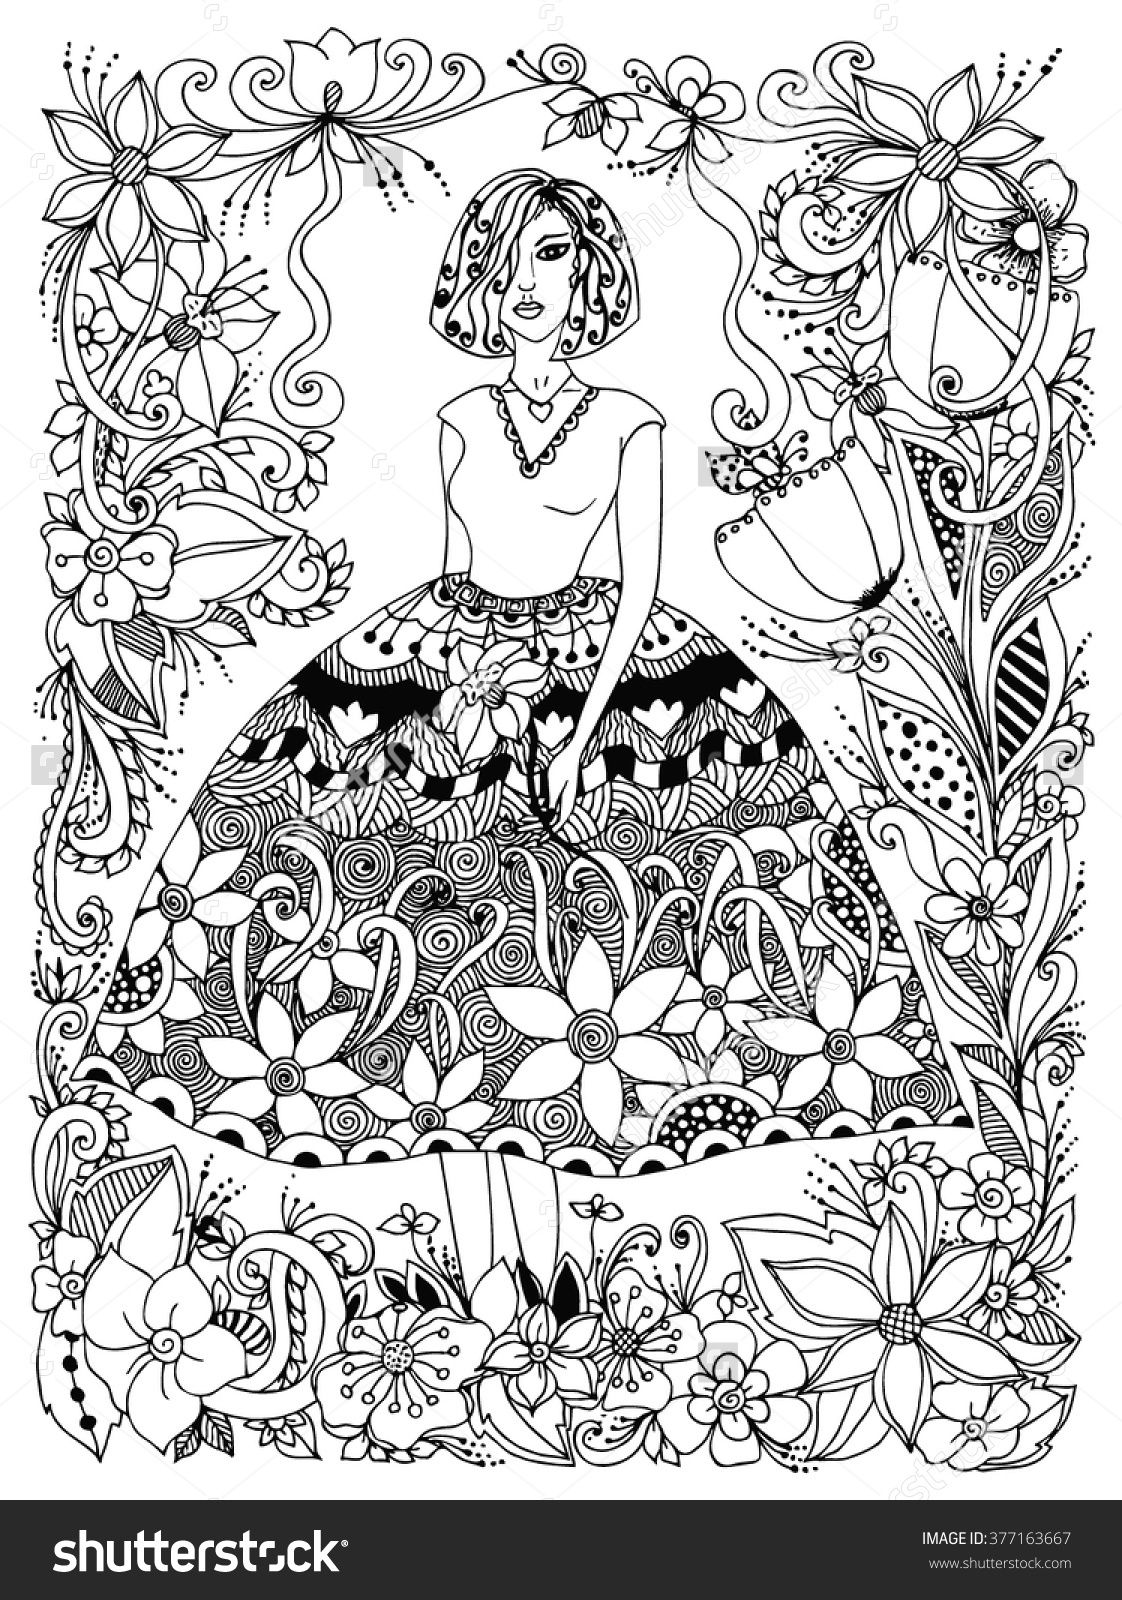 Girl Holding Flower Zentangle In Lush Dress Flowers Doodle Zenart Adult Coloring Page